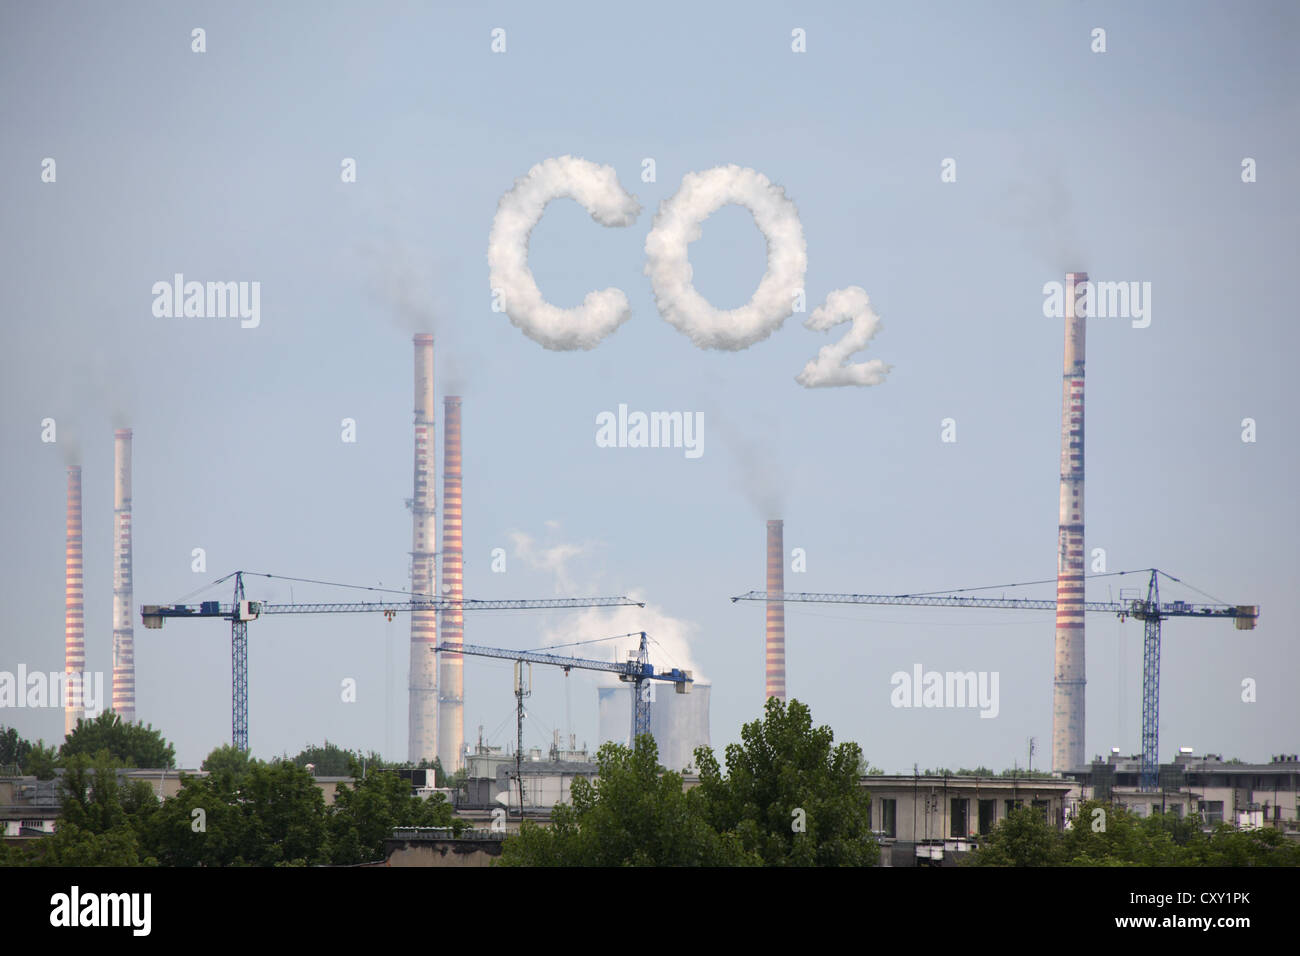 Industrial plant, cloud formation forming the lettering CO2, symbolic image for carbon dioxide emissions, illustration - Stock Image